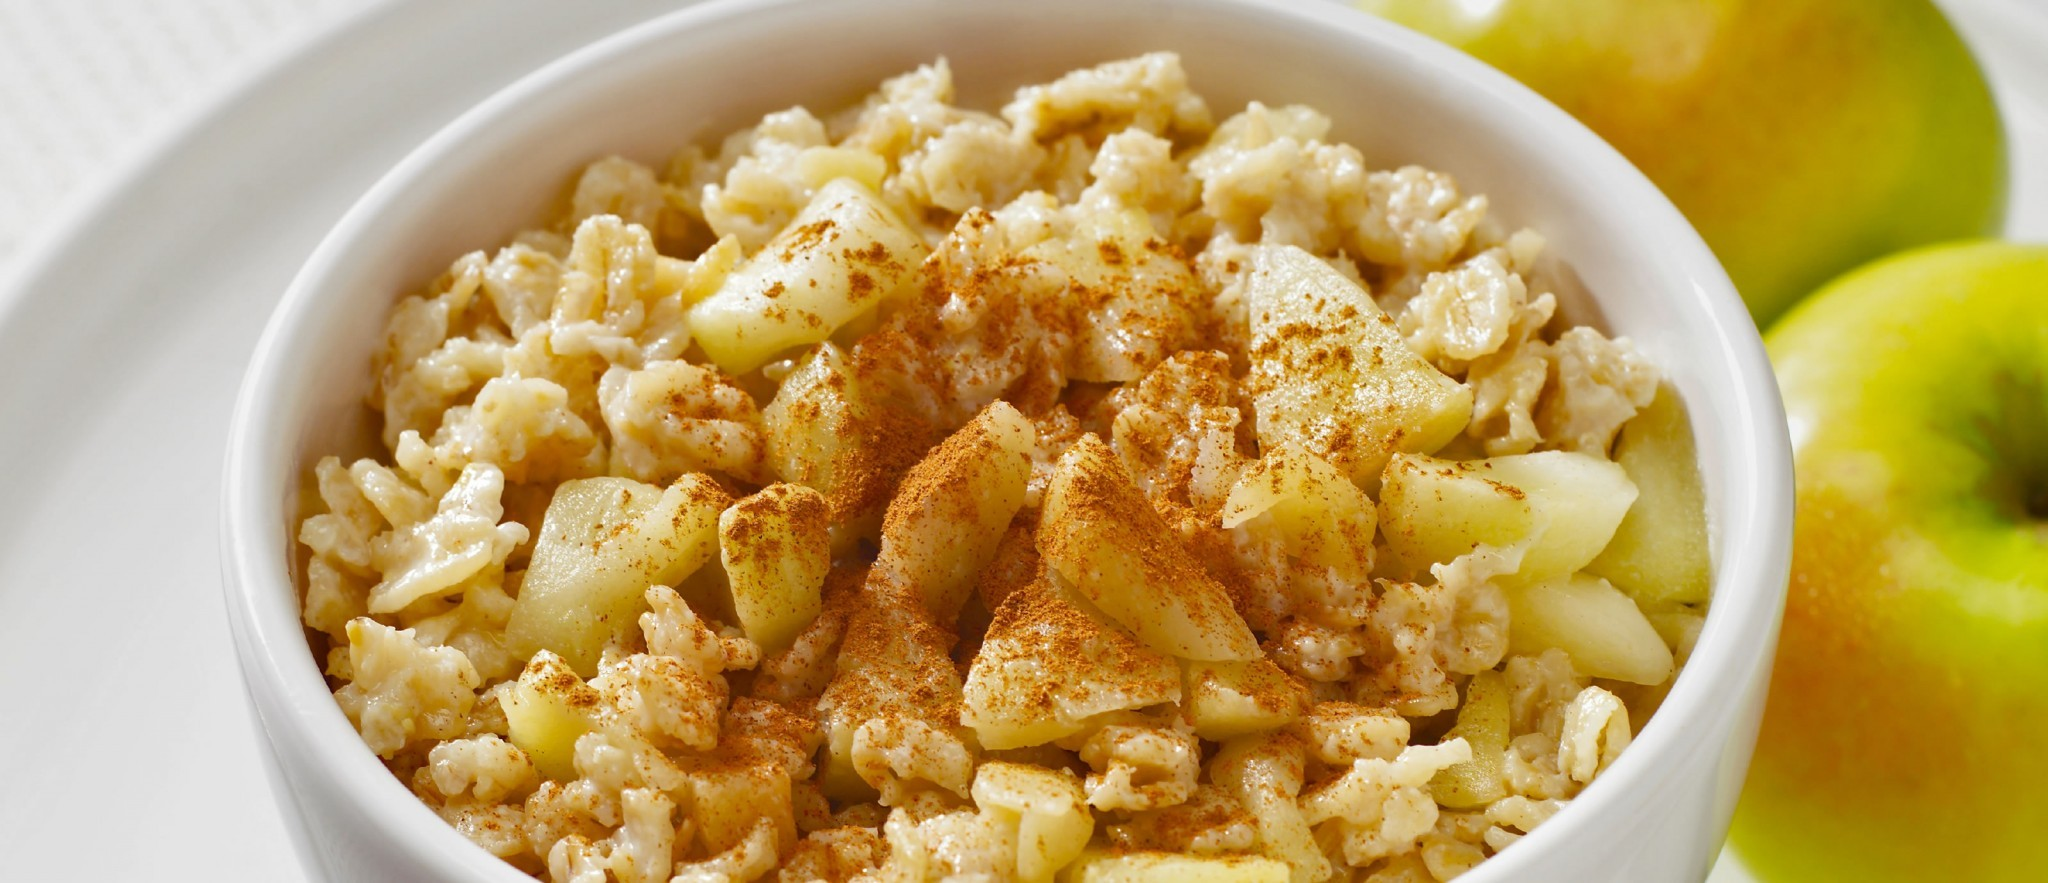 Whole grains are an important part of the Pritikin Diet for Healthy Weight Loss